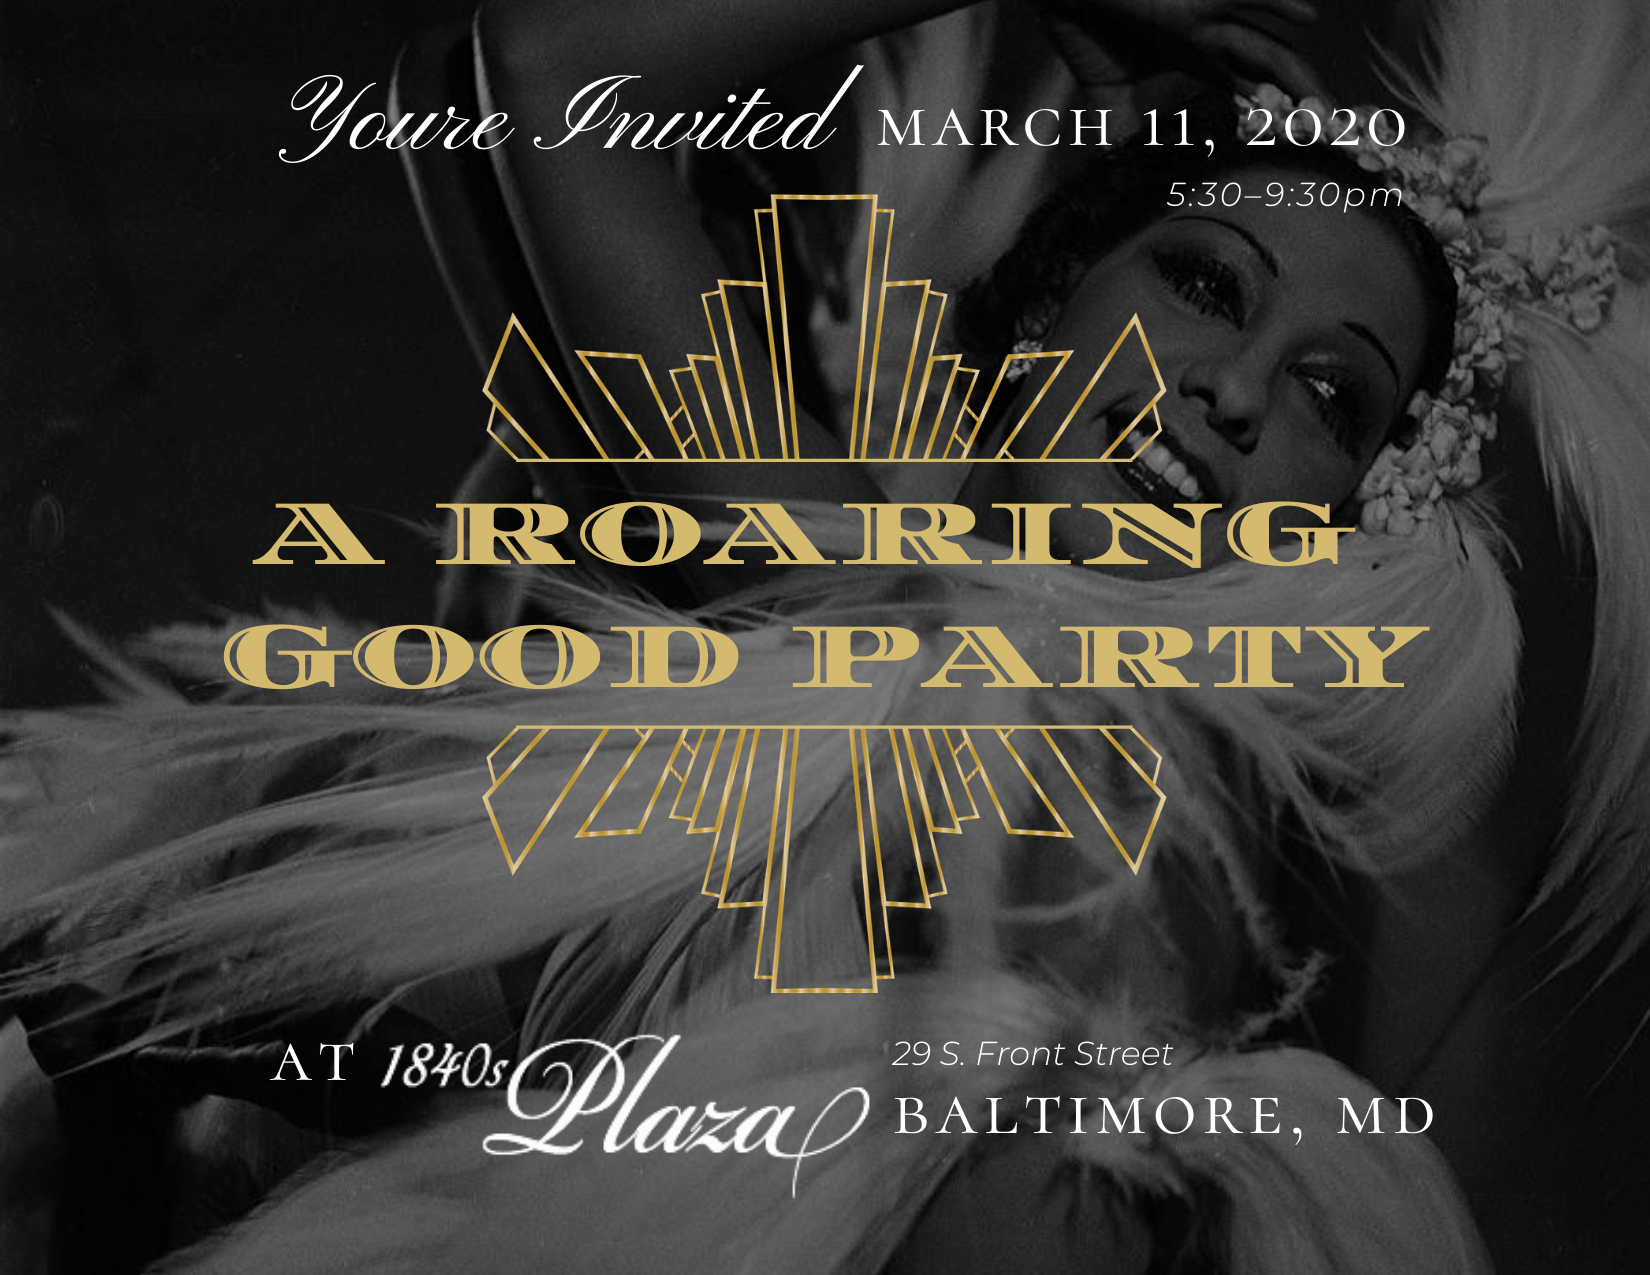 A Roaring Good Party: Annual NACE Fundrasier